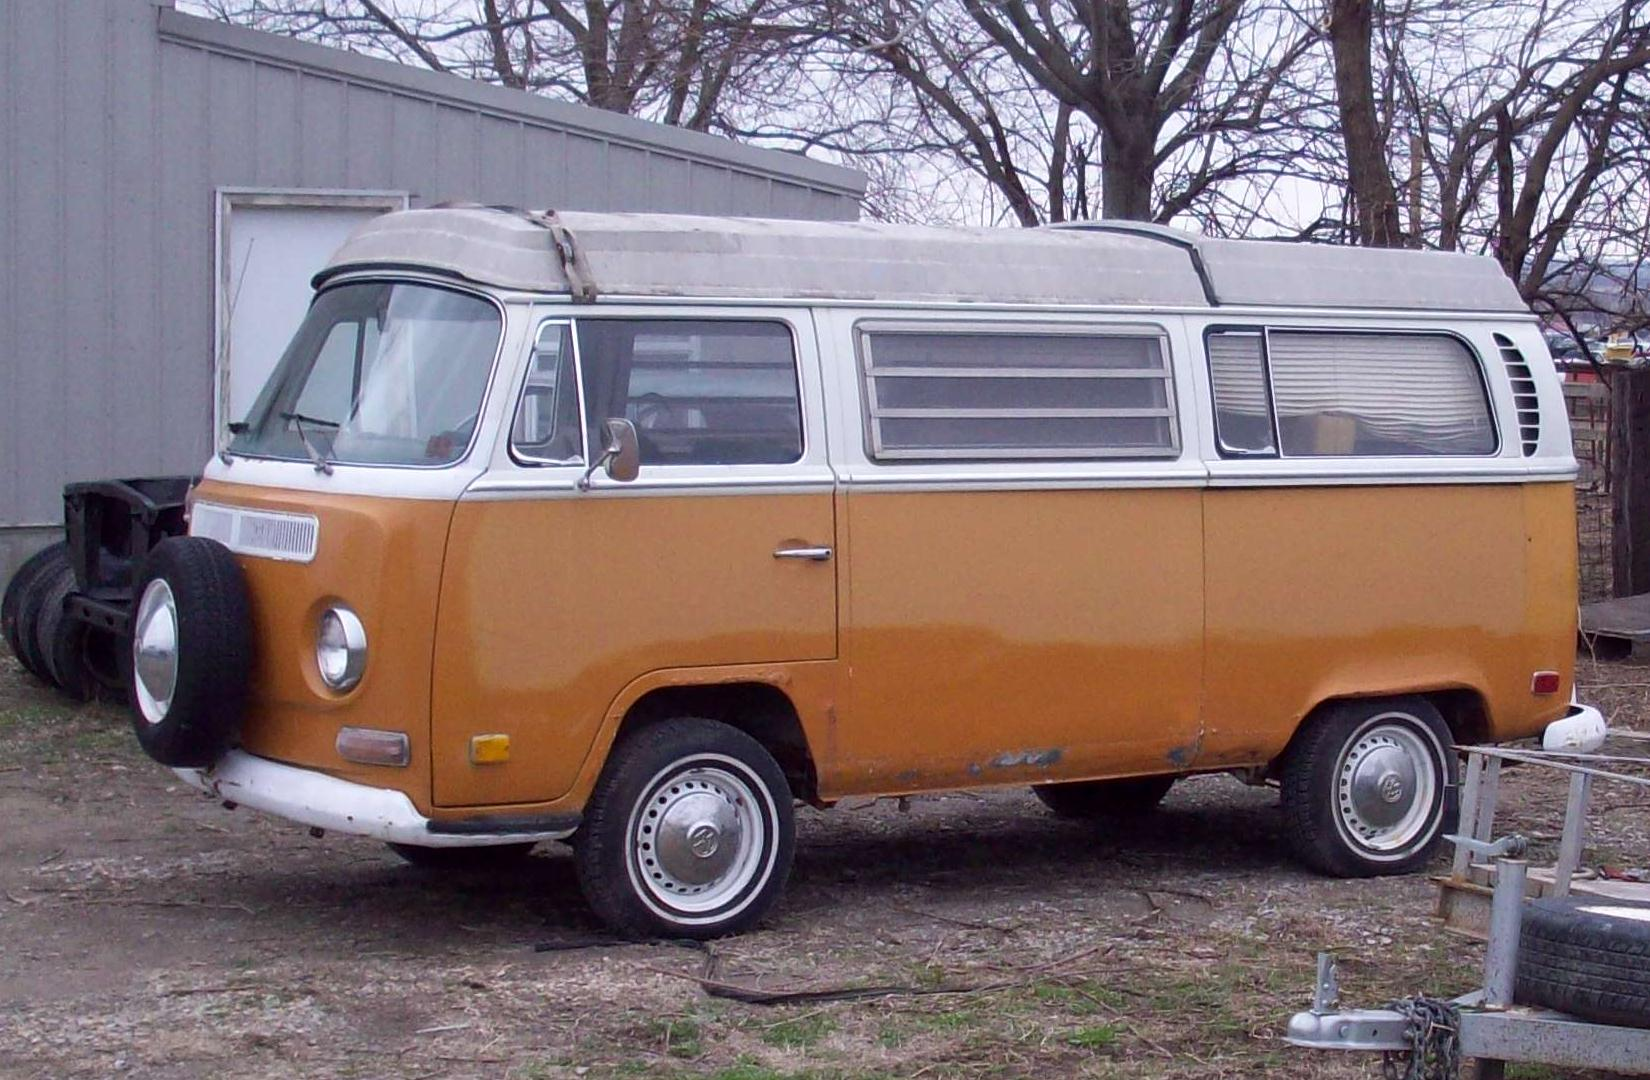 Click image for larger version  Name:VW bus.jpg Views:157 Size:264.2 KB ID:68205